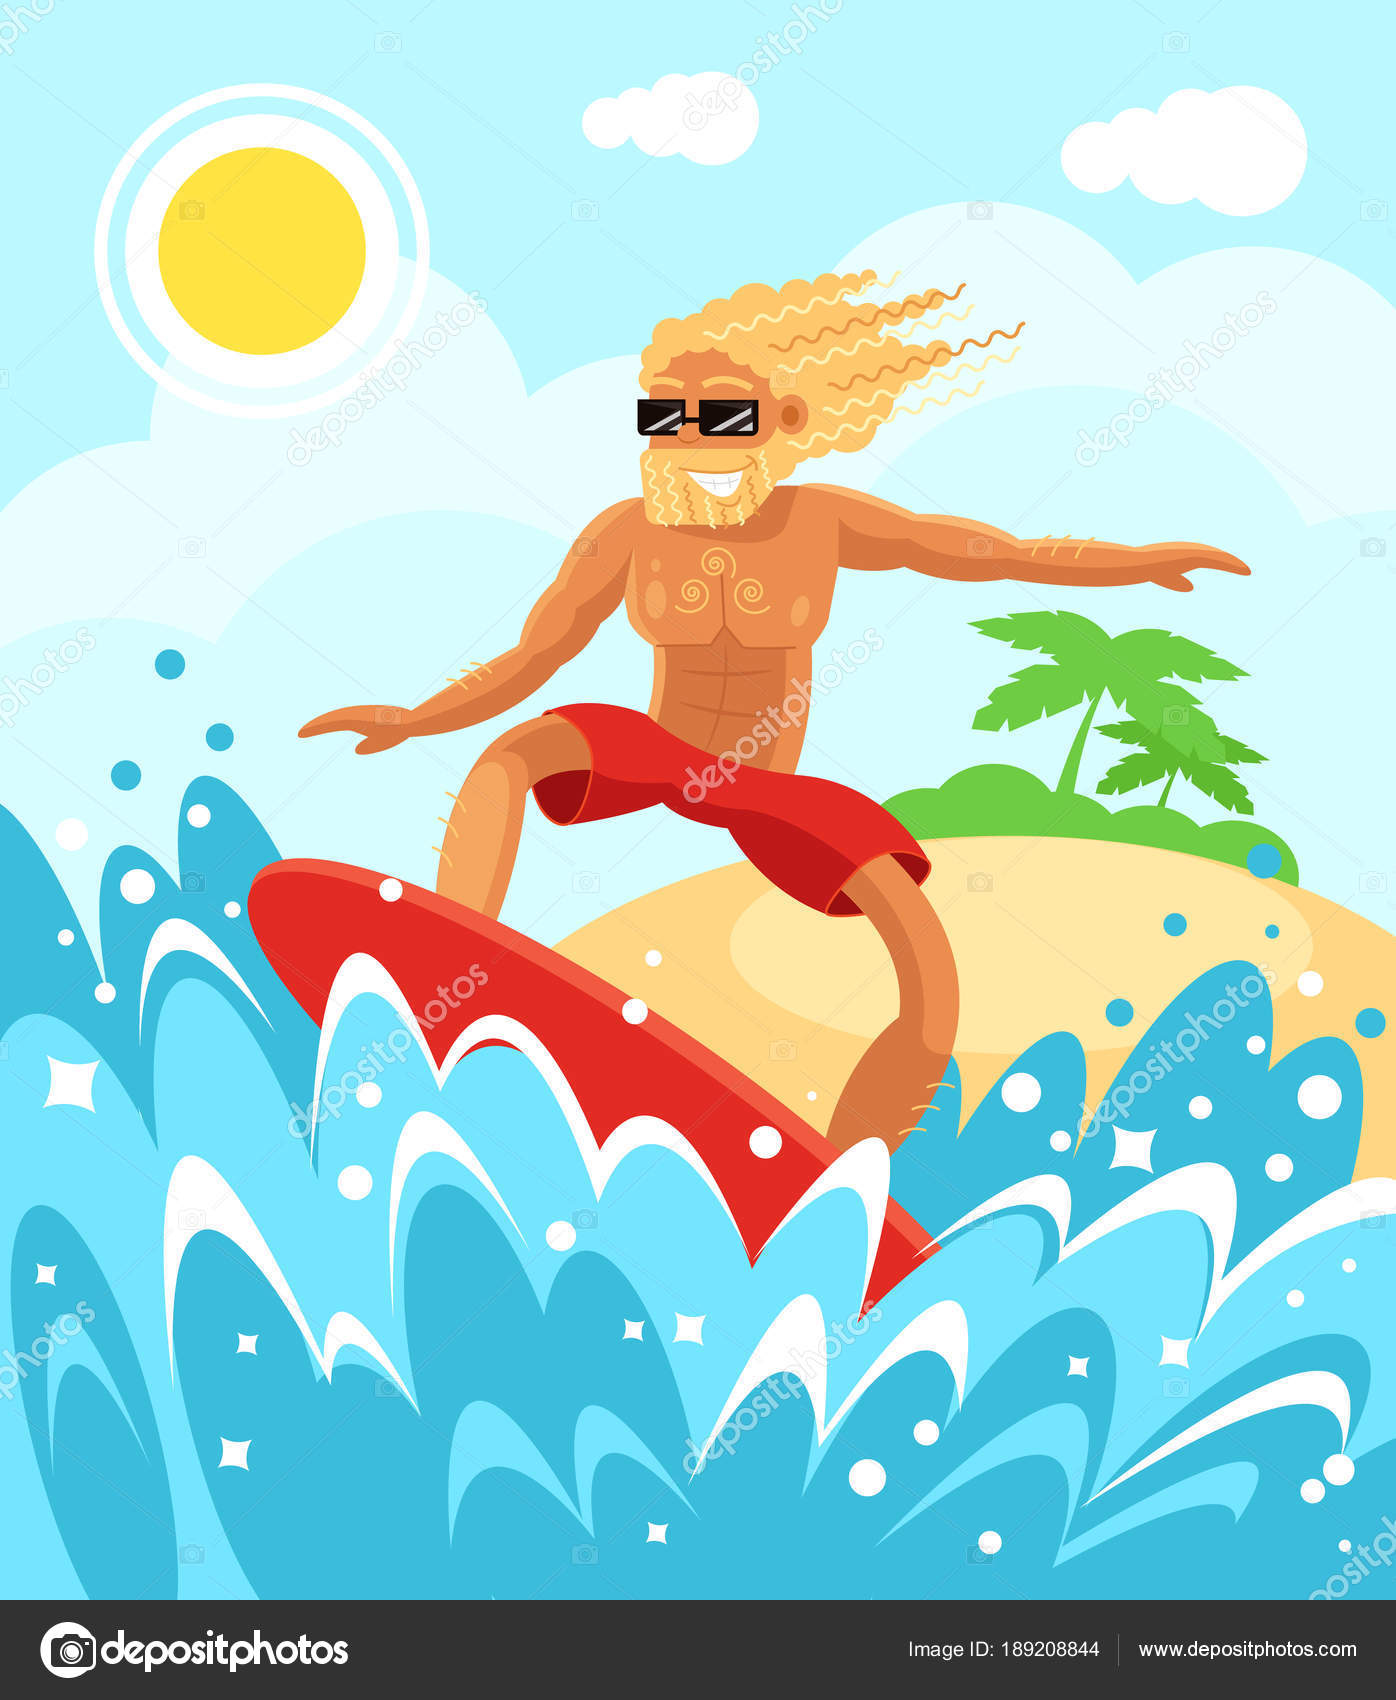 Holiday Vacation Relax Summer Time And Sunny Days Sea Water Wave Surfboard Concept Vector Flat Cartoon Illustration By MicrobaGrandioza